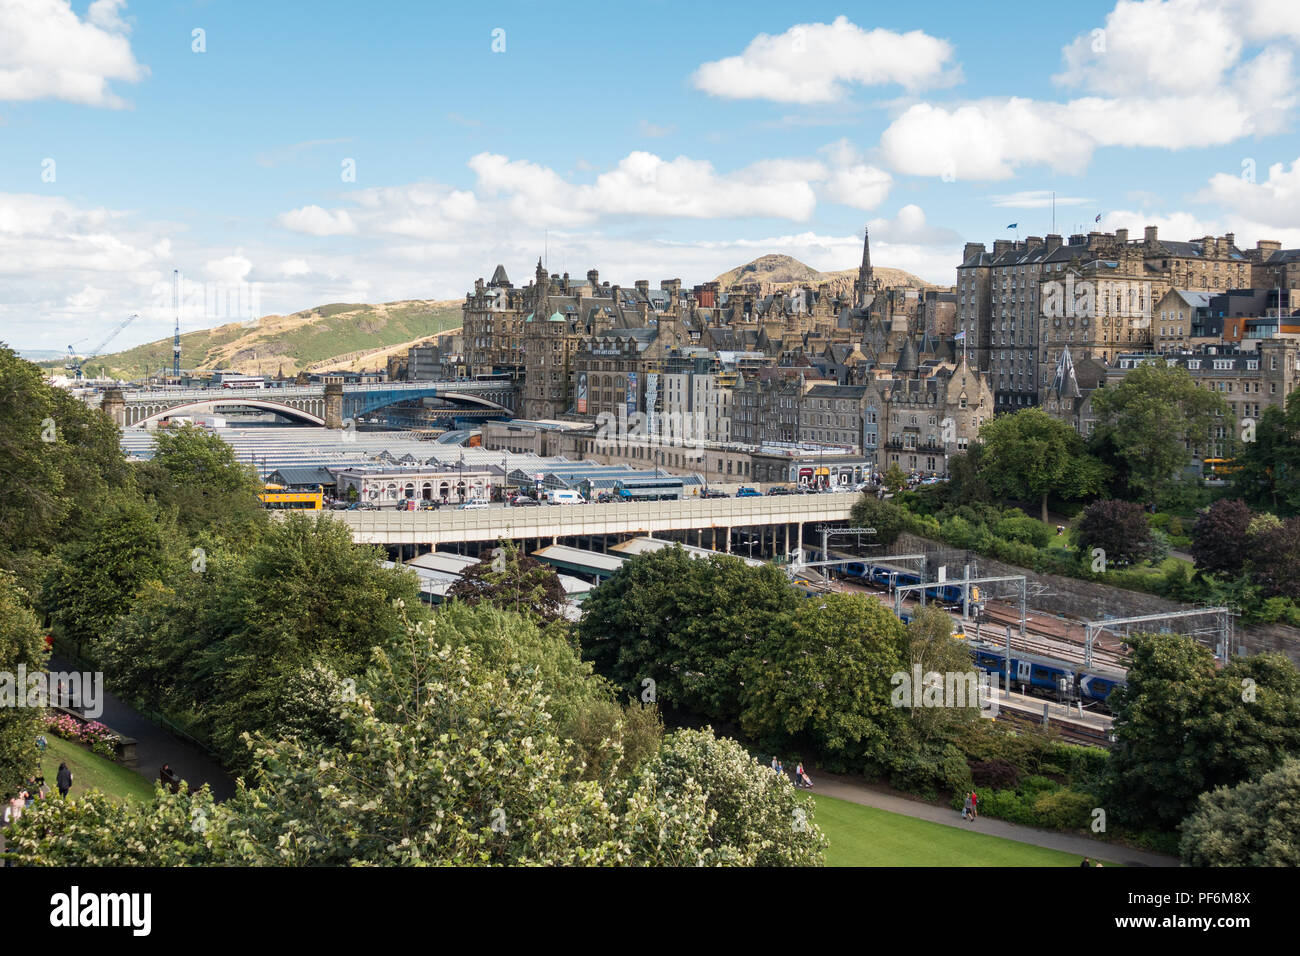 Edinburgh Waverley Station, old town and Arthurs Seat, Edinburgh, Scotland, UK - Stock Image